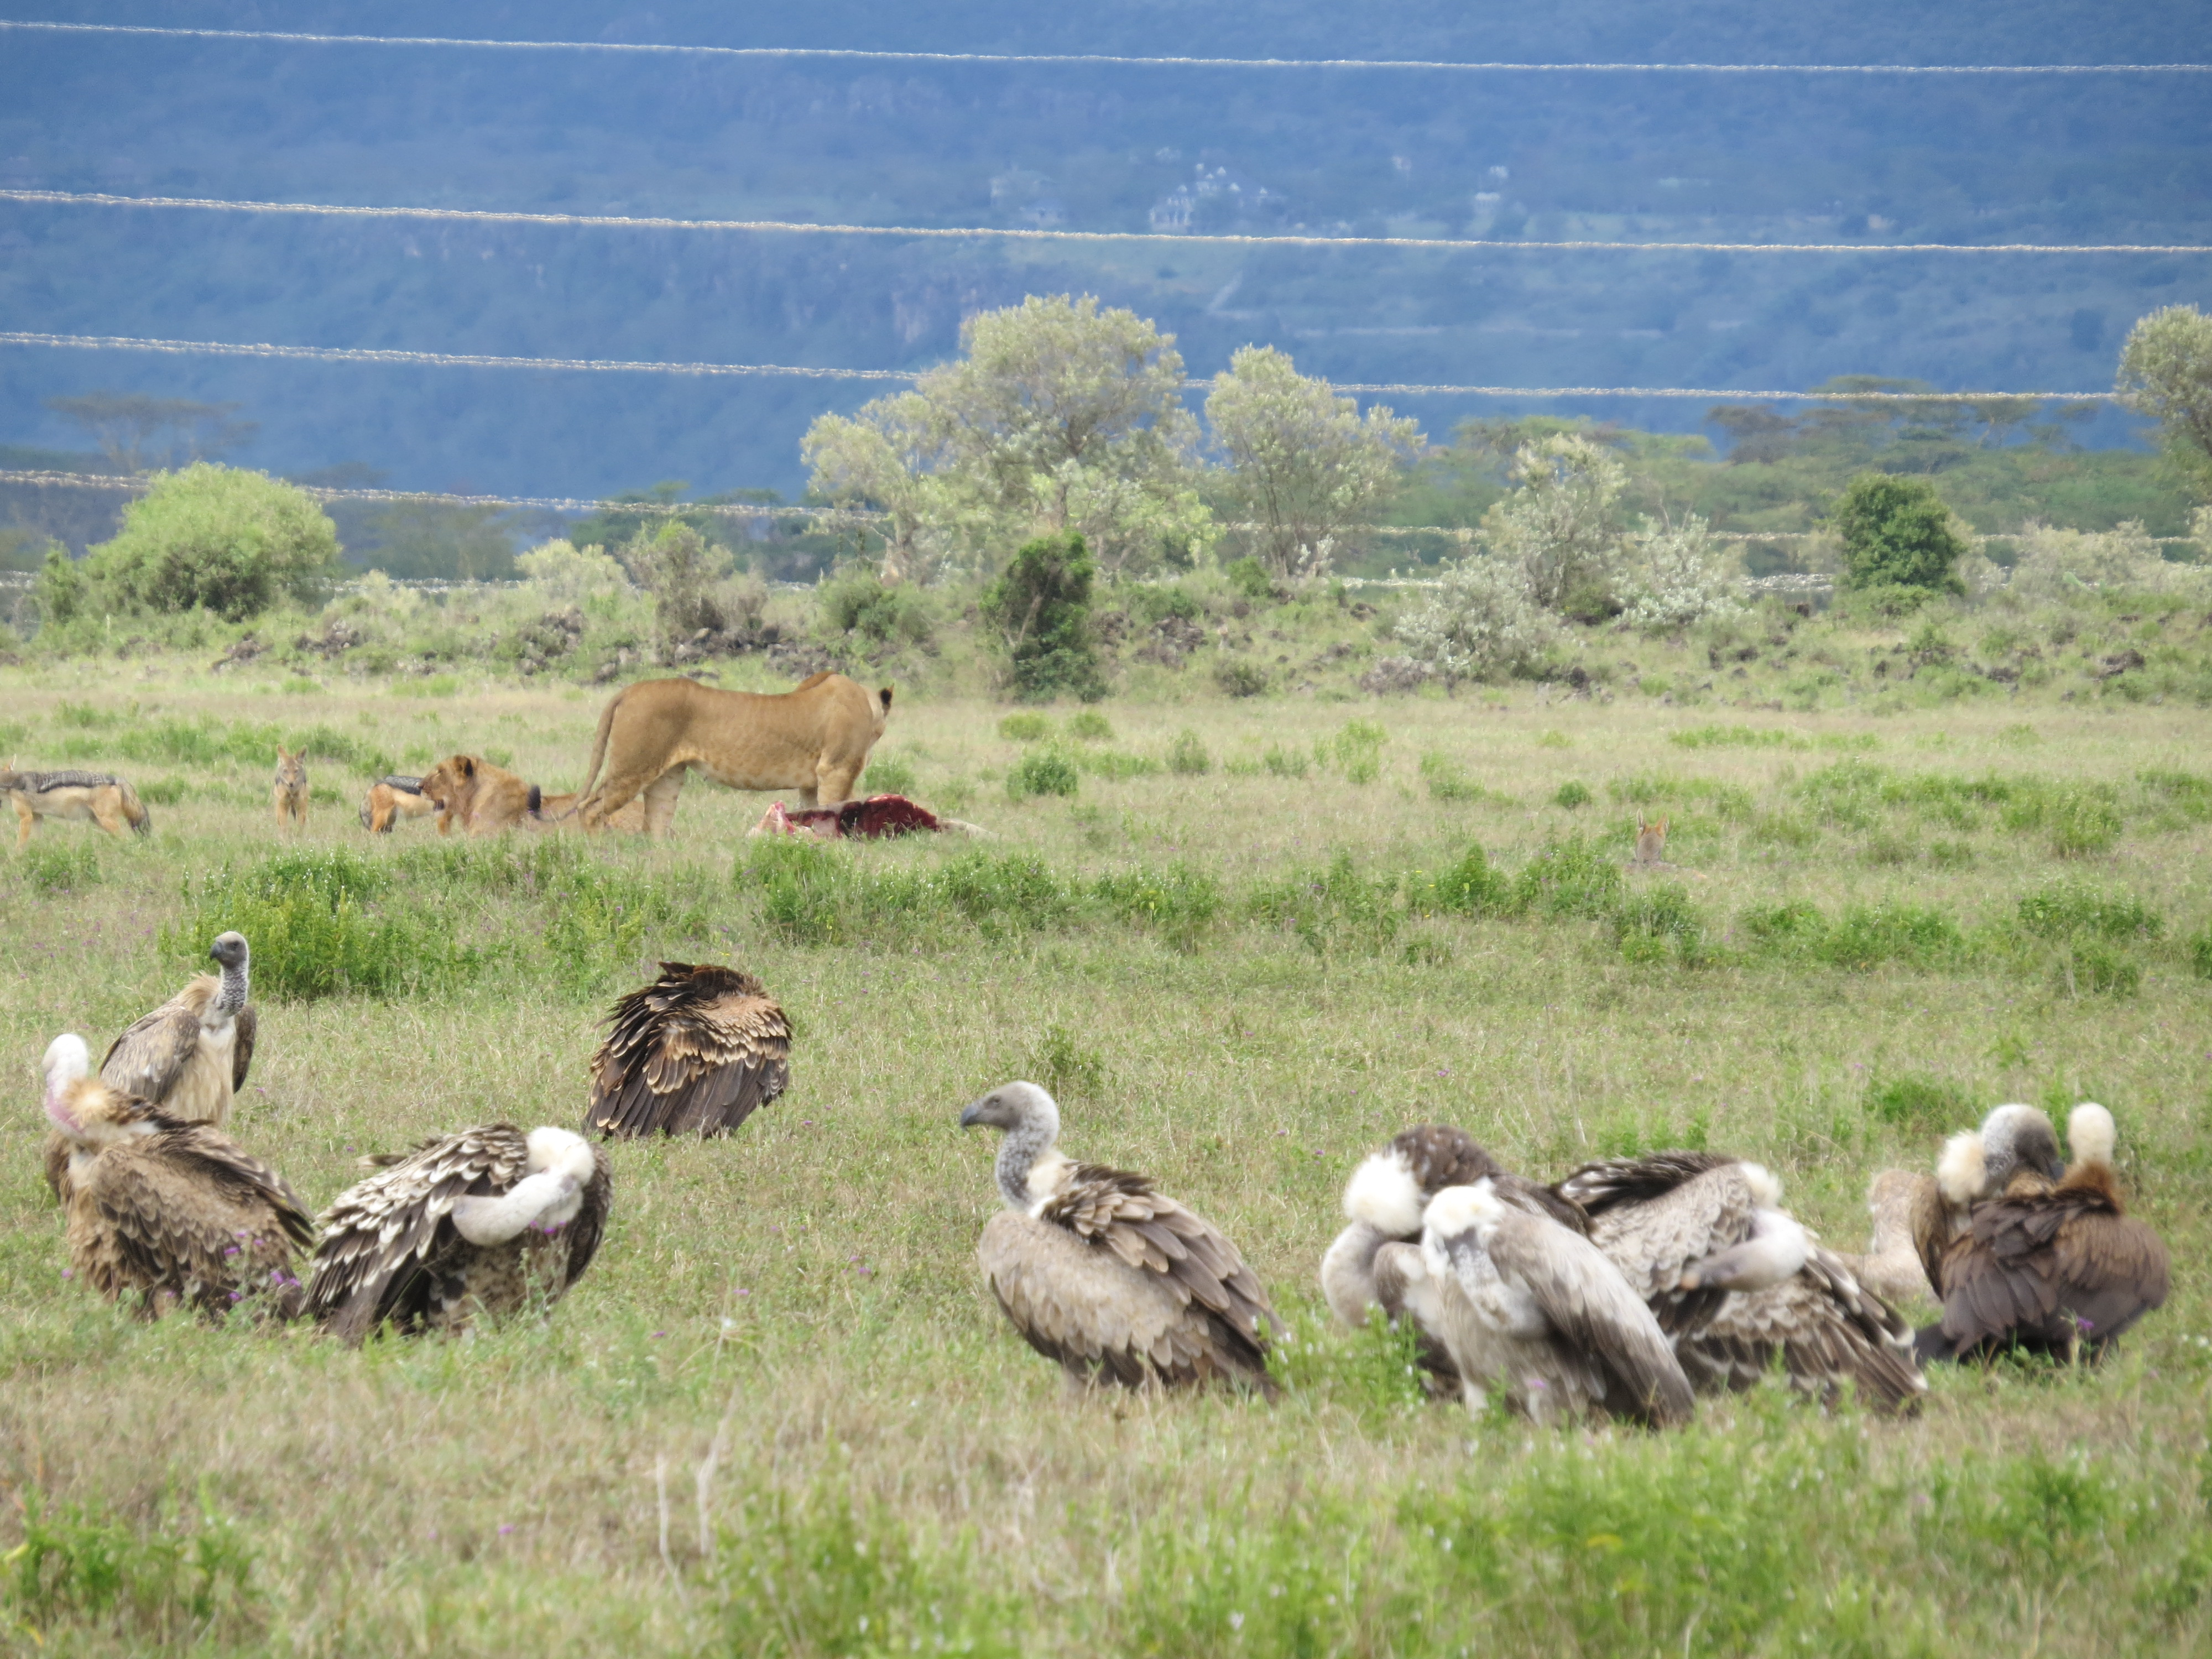 Lion defending prey from Silver-backed jackals and Ruppell's vultures listed Critically endangered on IUCN Red List in Soysambu with newly installed pylon and transmisson line. By Rupi Mangat